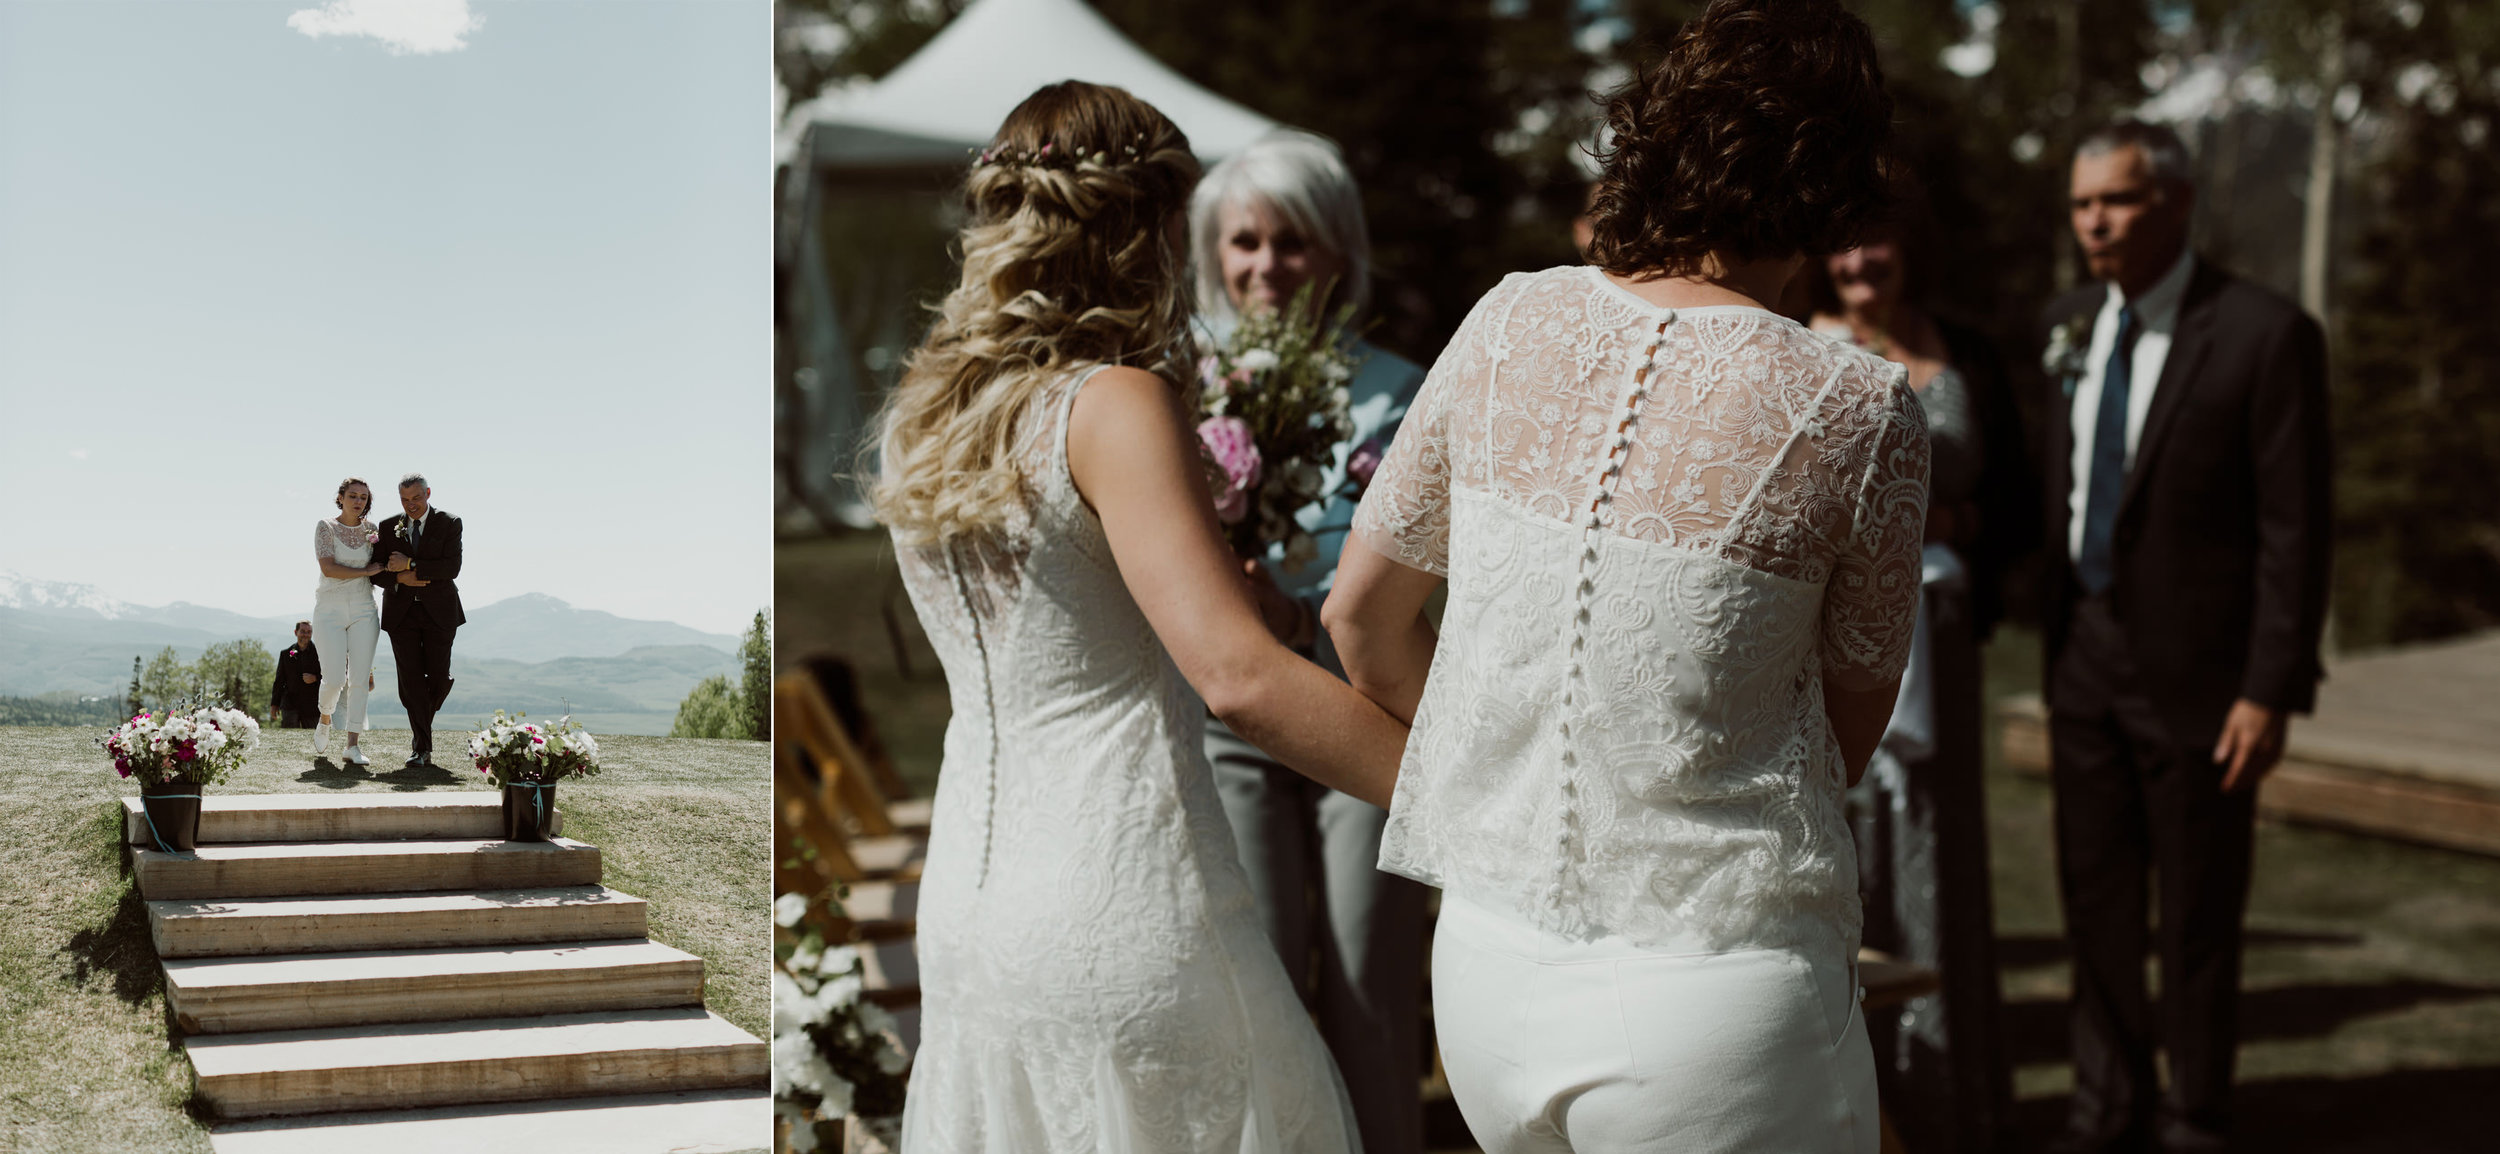 cedarandpines-intimate-san-sofia-telluride-colorado-wedding_PS2.jpg